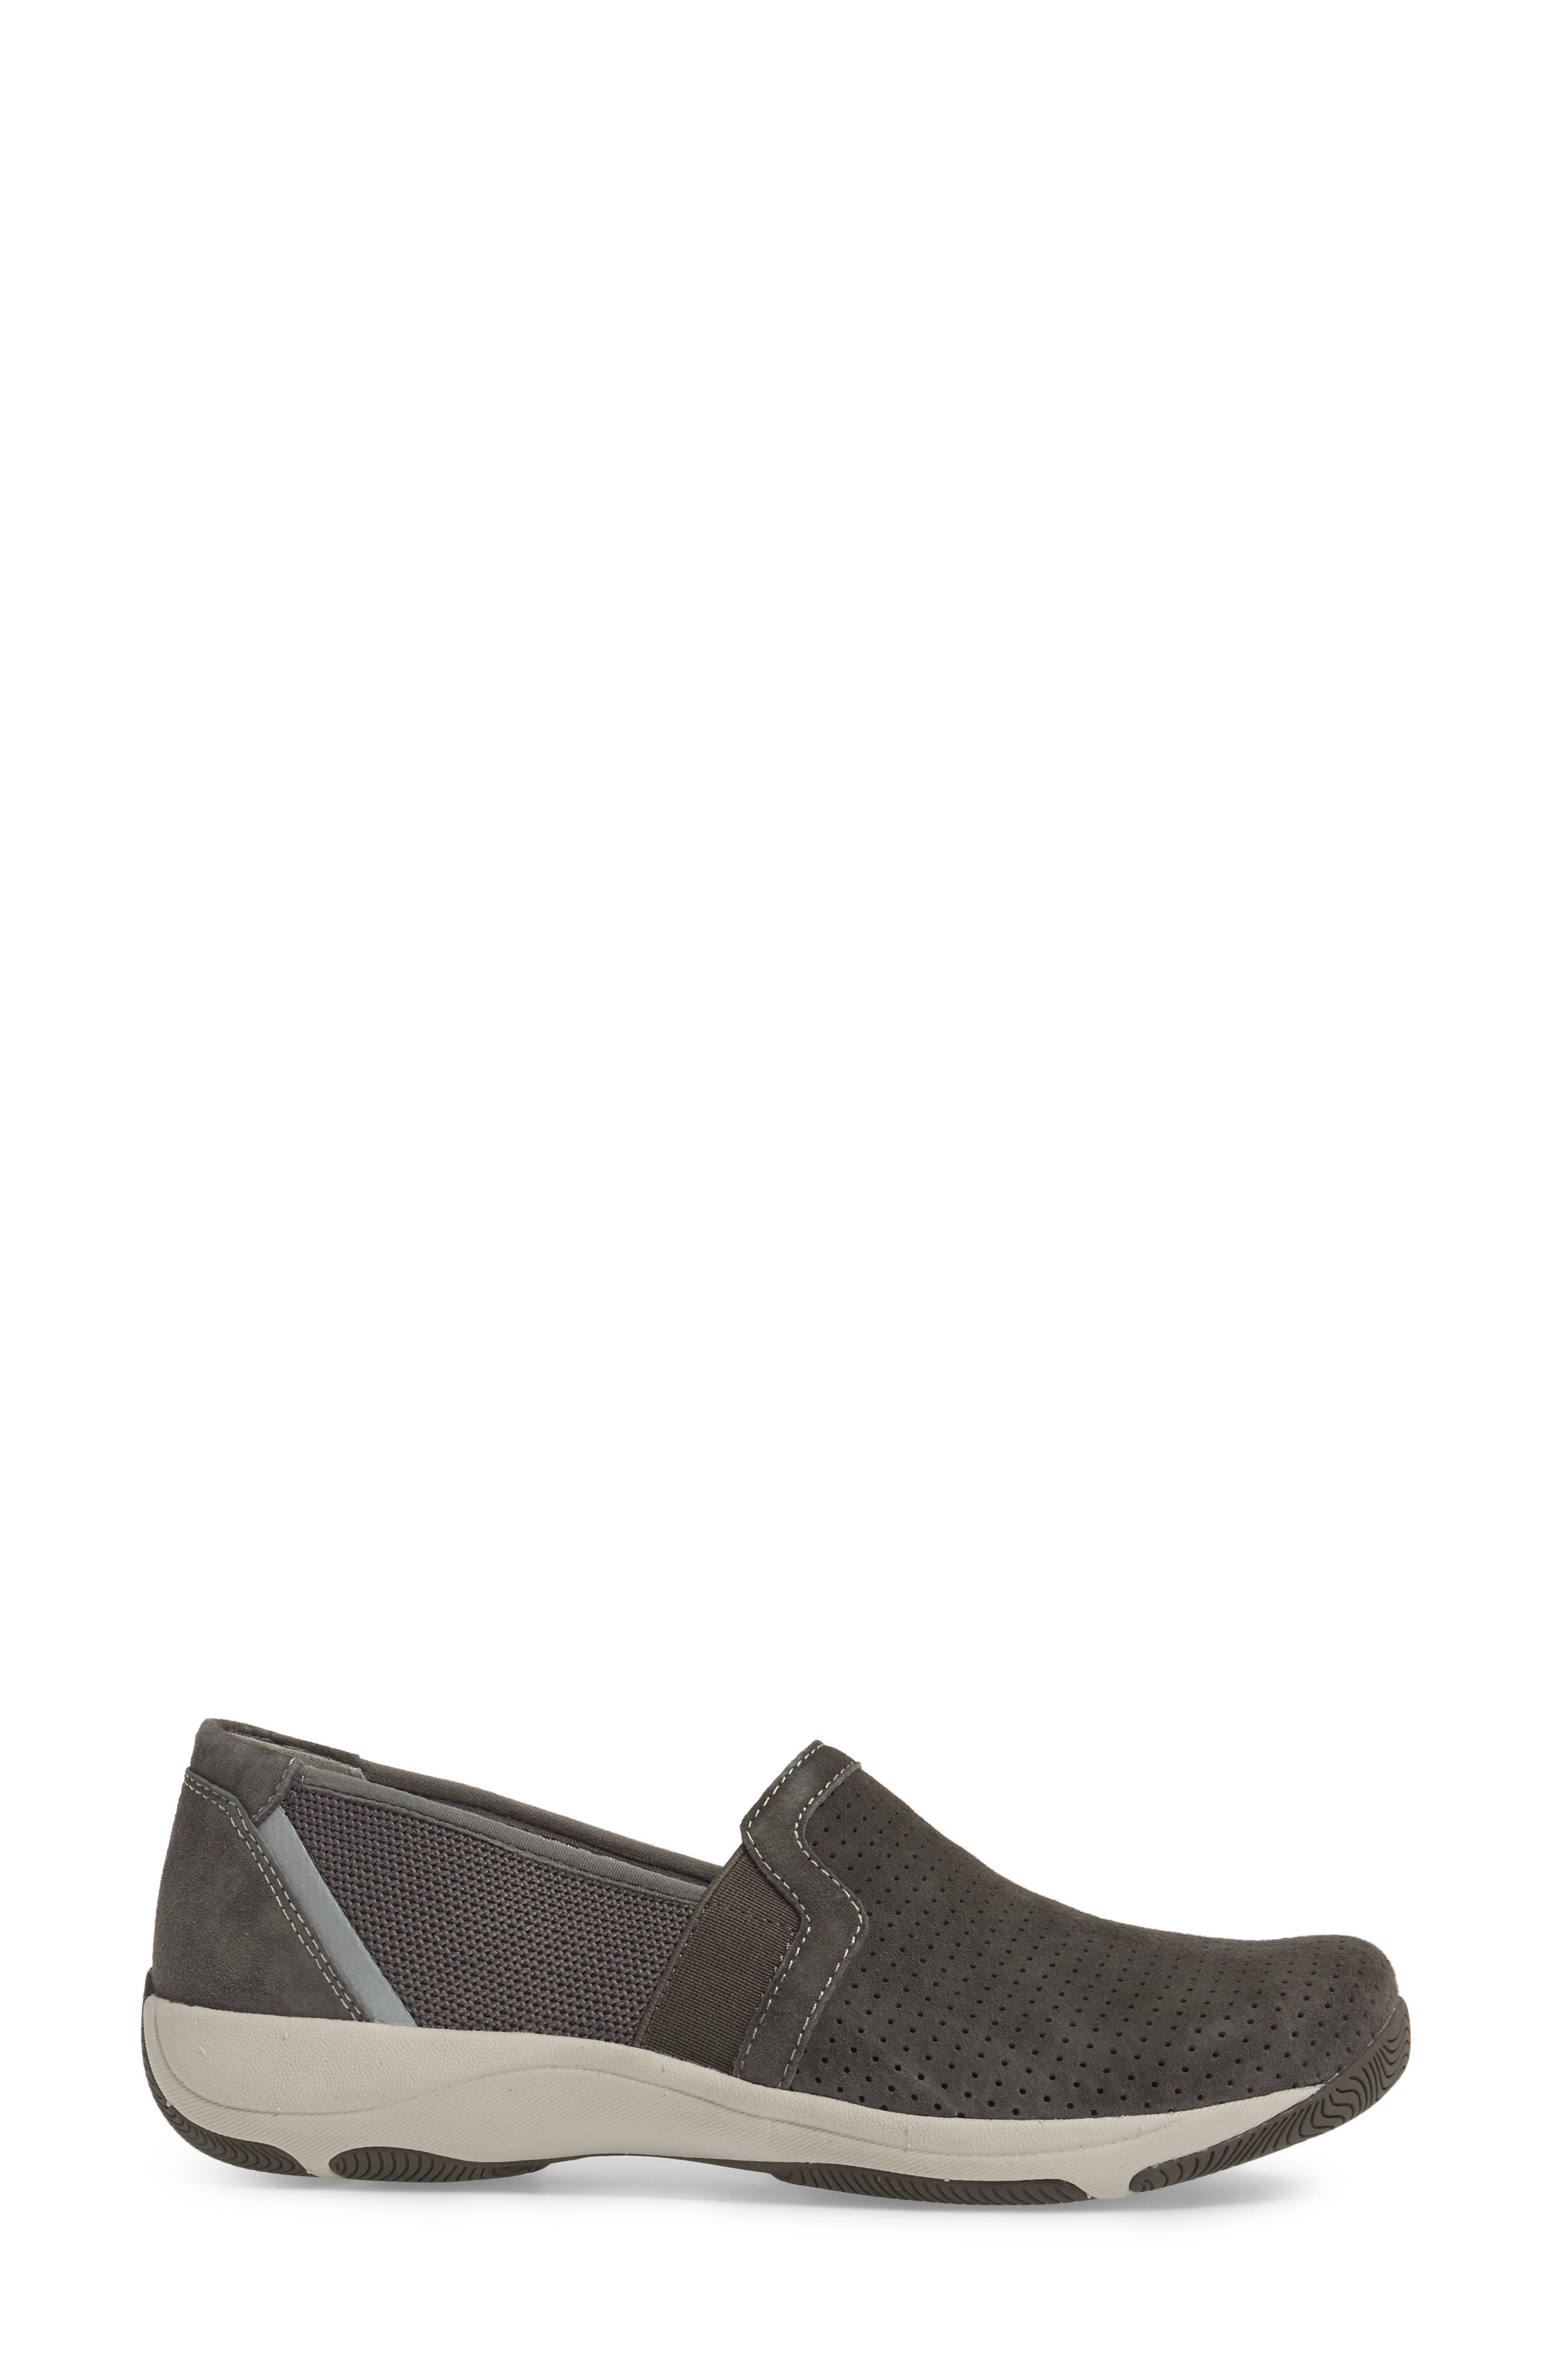 Halifax Collection Halle Slip-On Sneaker,                             Alternate thumbnail 8, color,